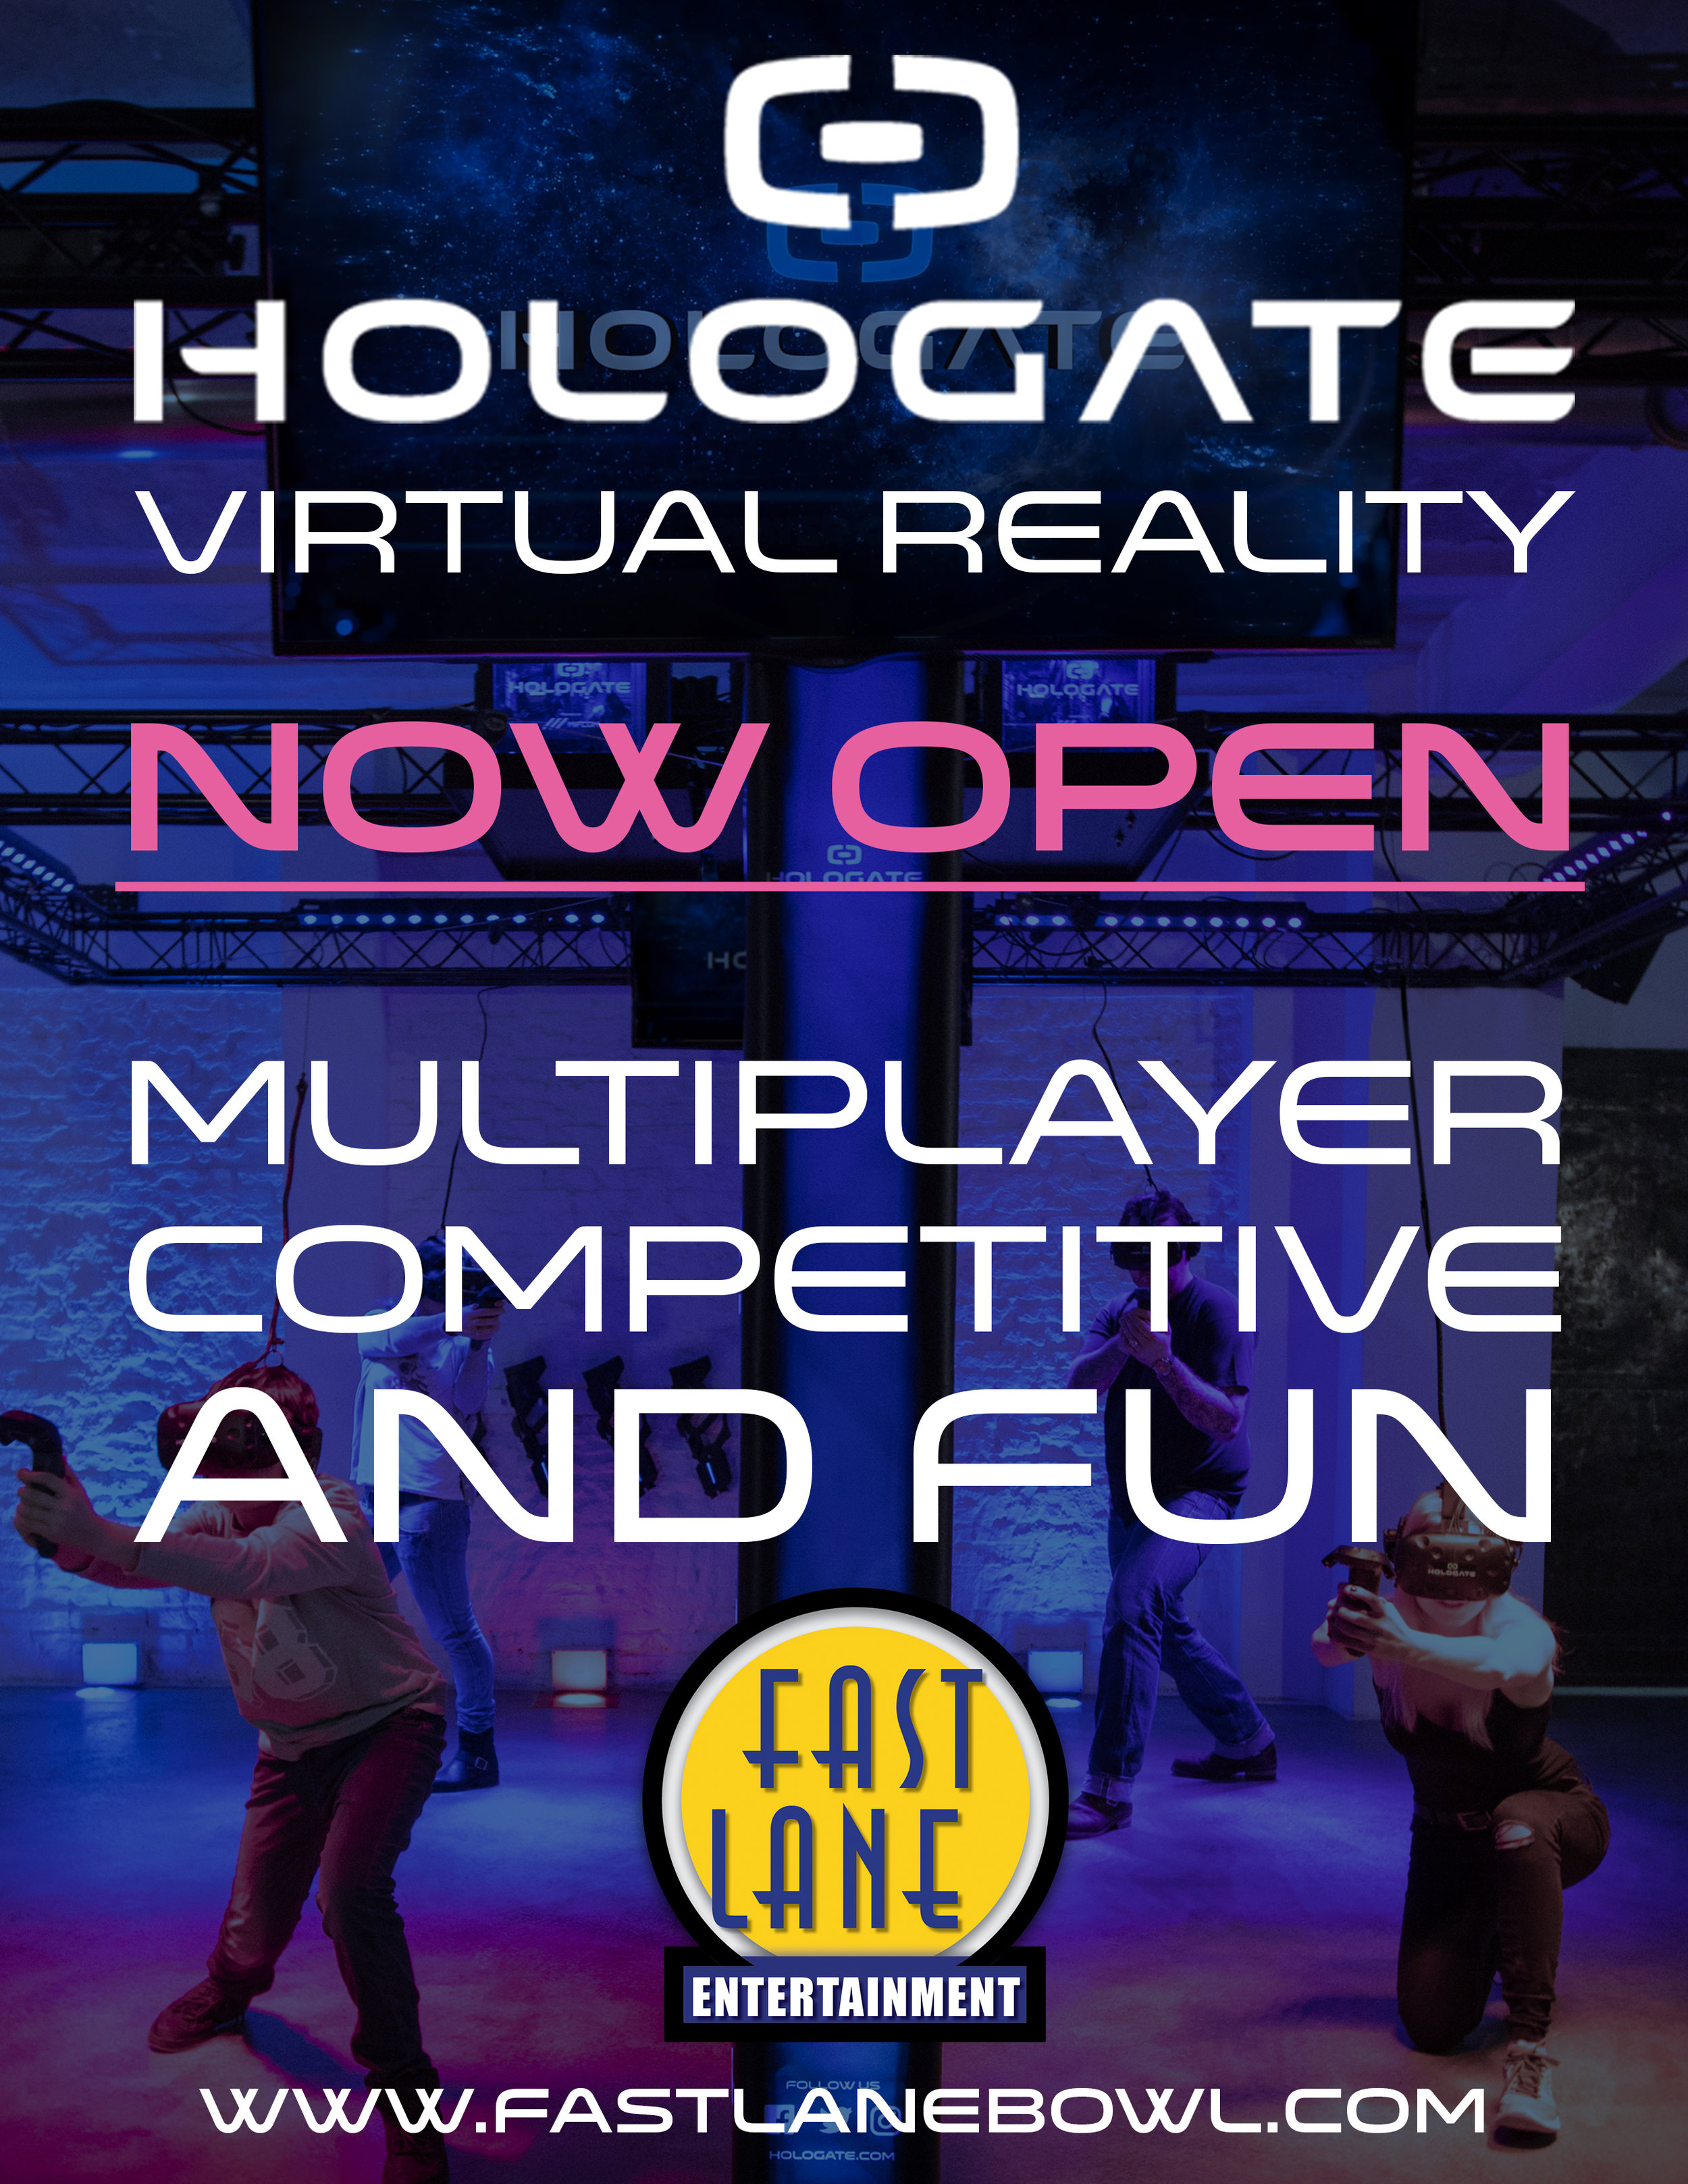 Hologate Now open Flyer.jpg